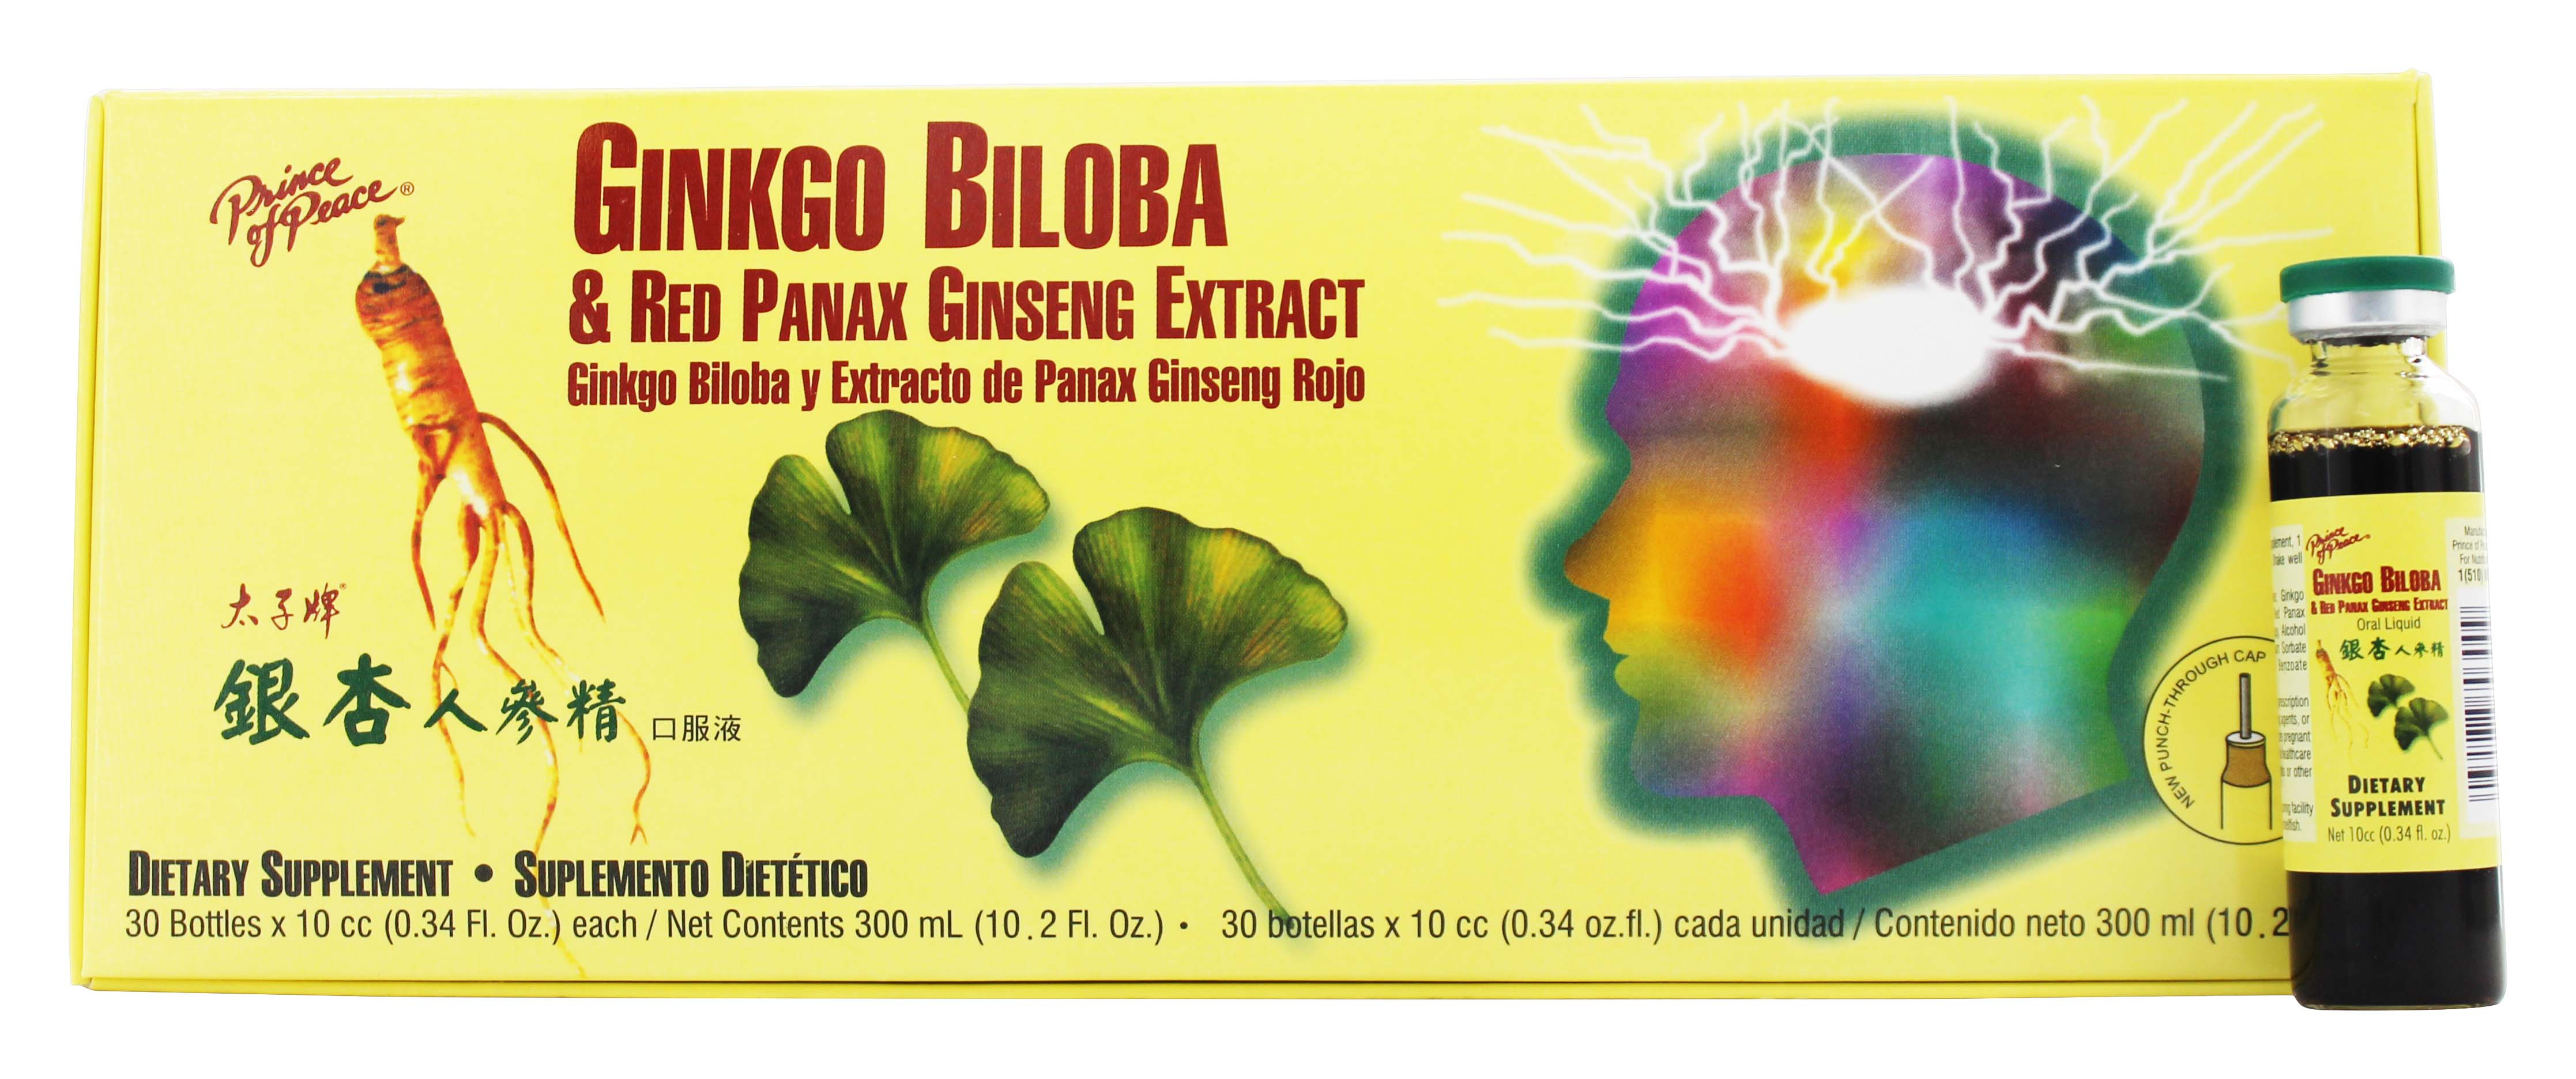 Prince of Peace - Ginkgo Biloba Red Panax Ginseng Extract - 30 Bottle(s)